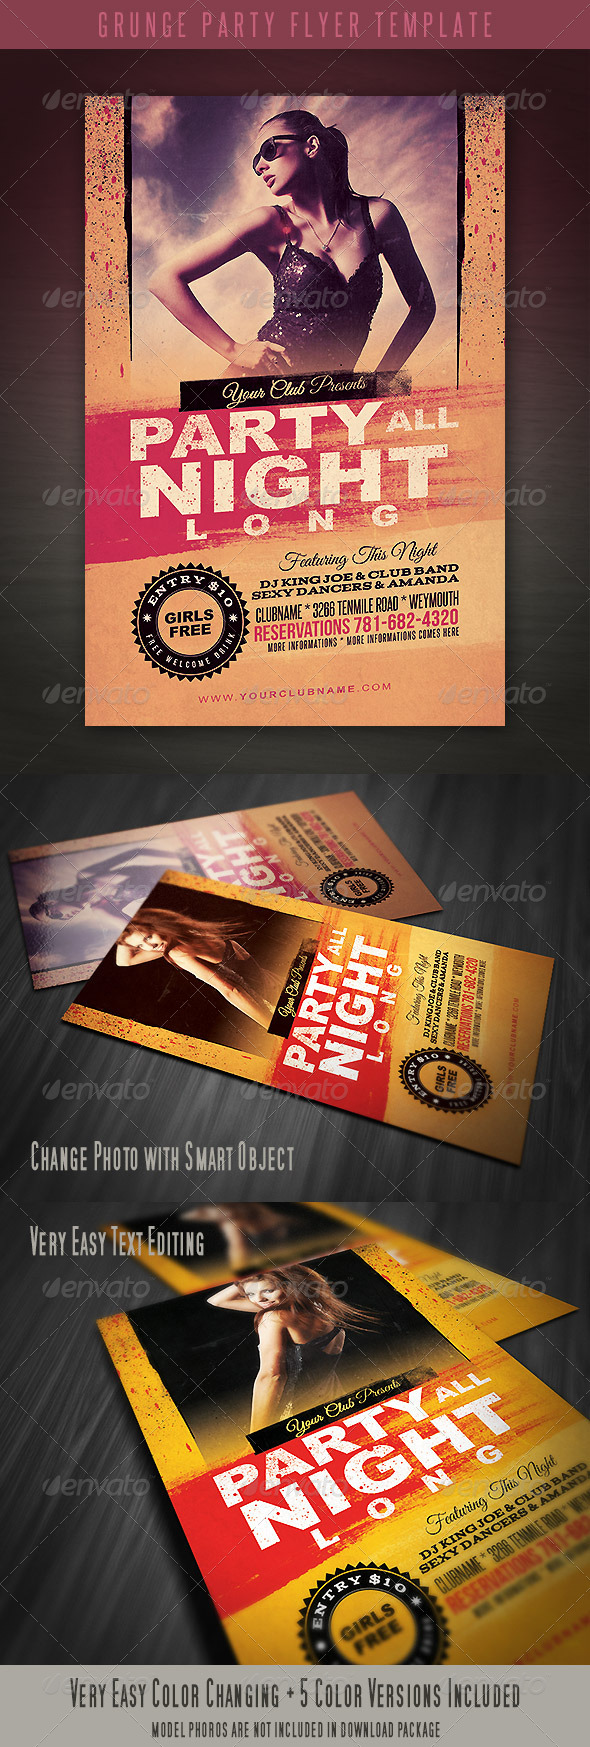 GraphicRiver Grunge Party Flyer Template 4533328